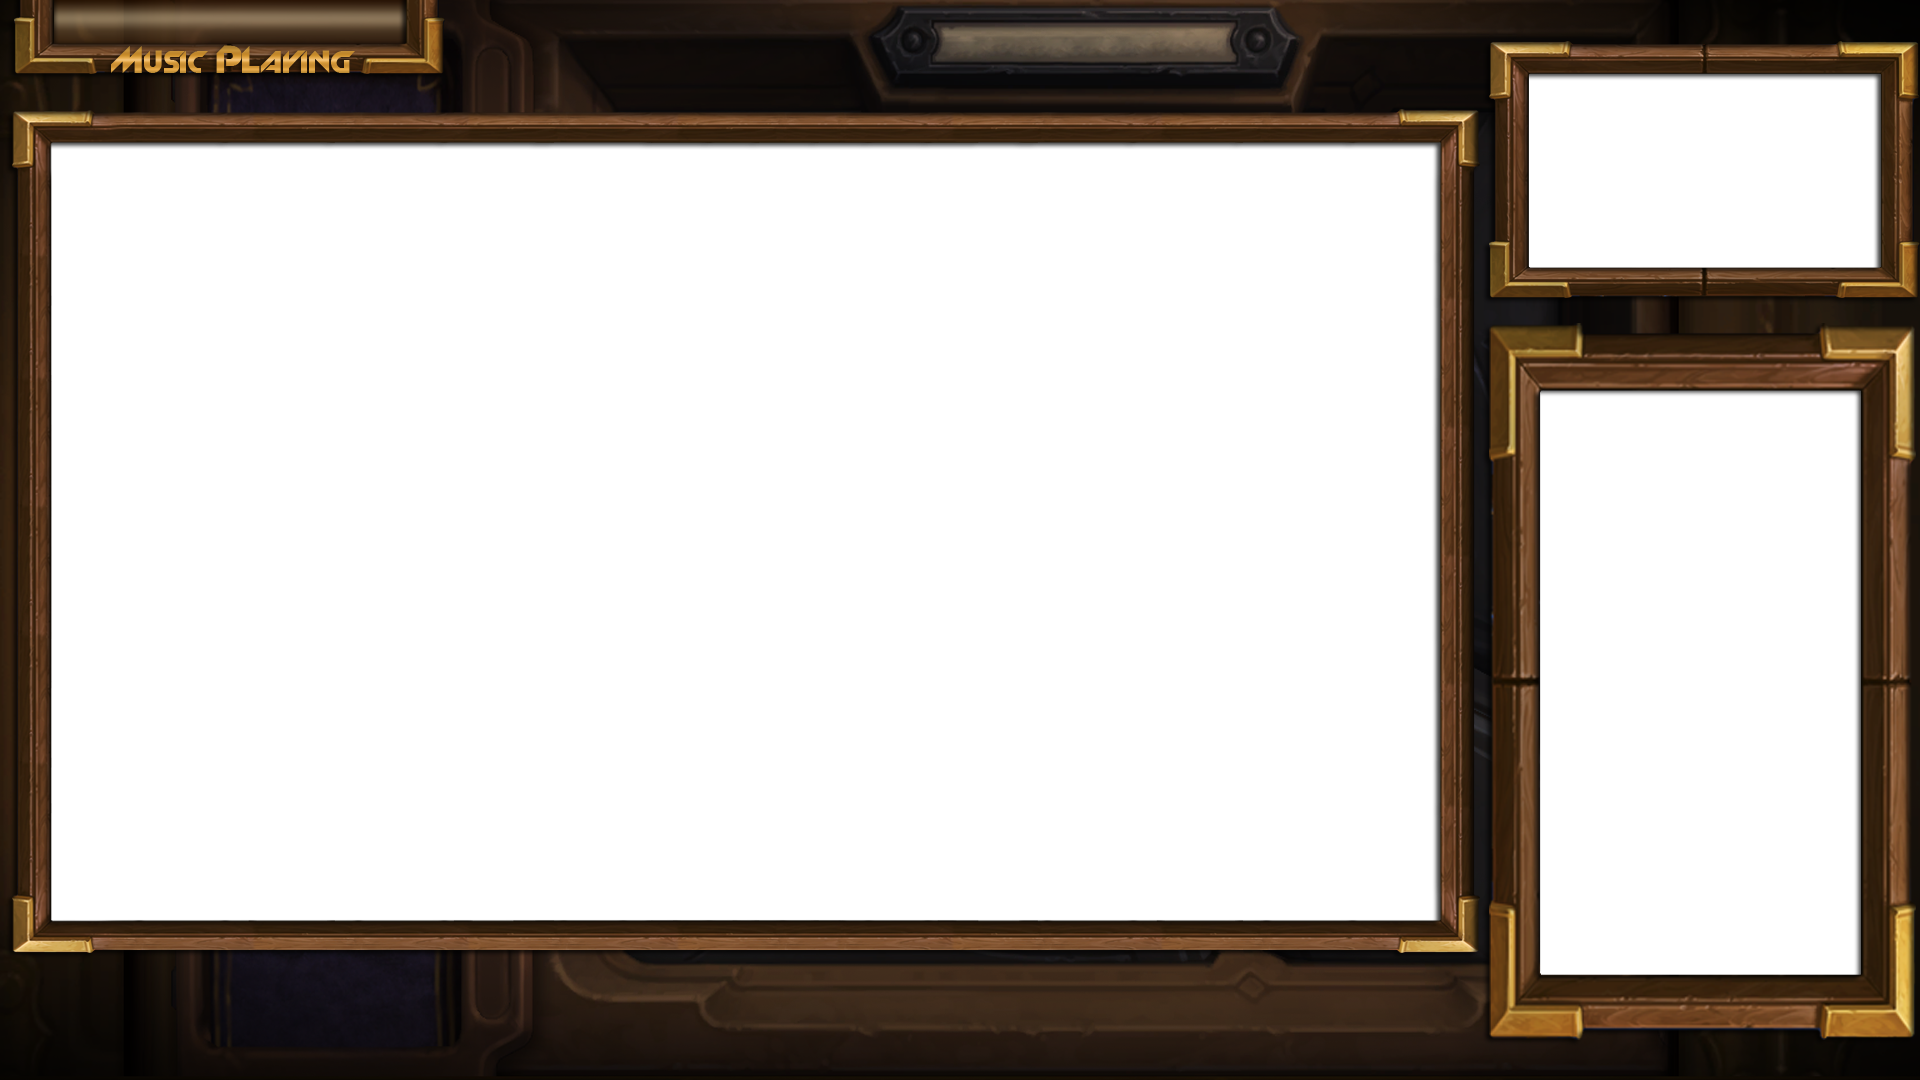 Obs transparent chat overlay. Showcase hearthstone full